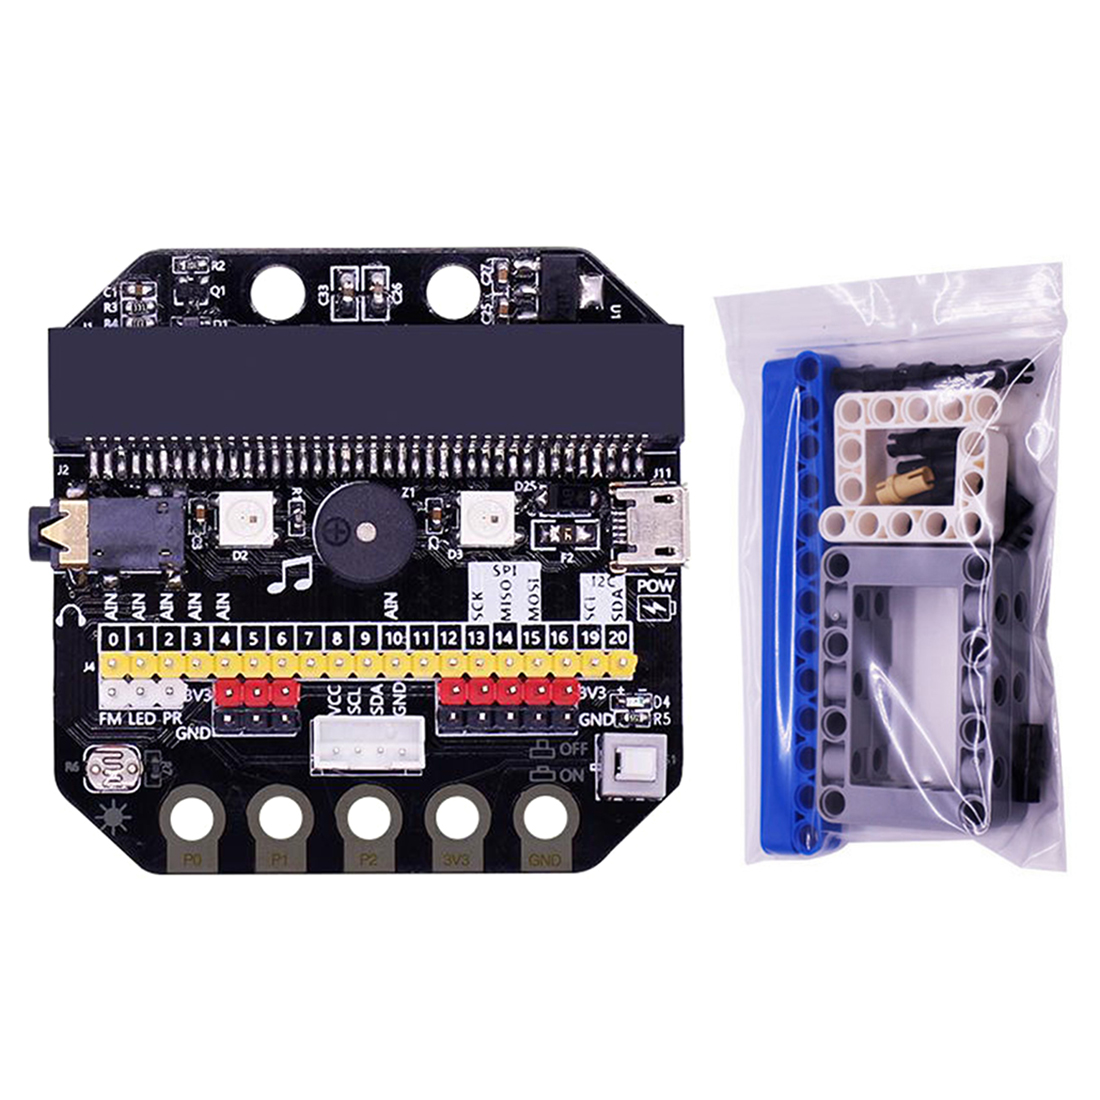 Basic:Bit IO Expansion Board Horizontal Type Pinboard Microbit Python Development Board